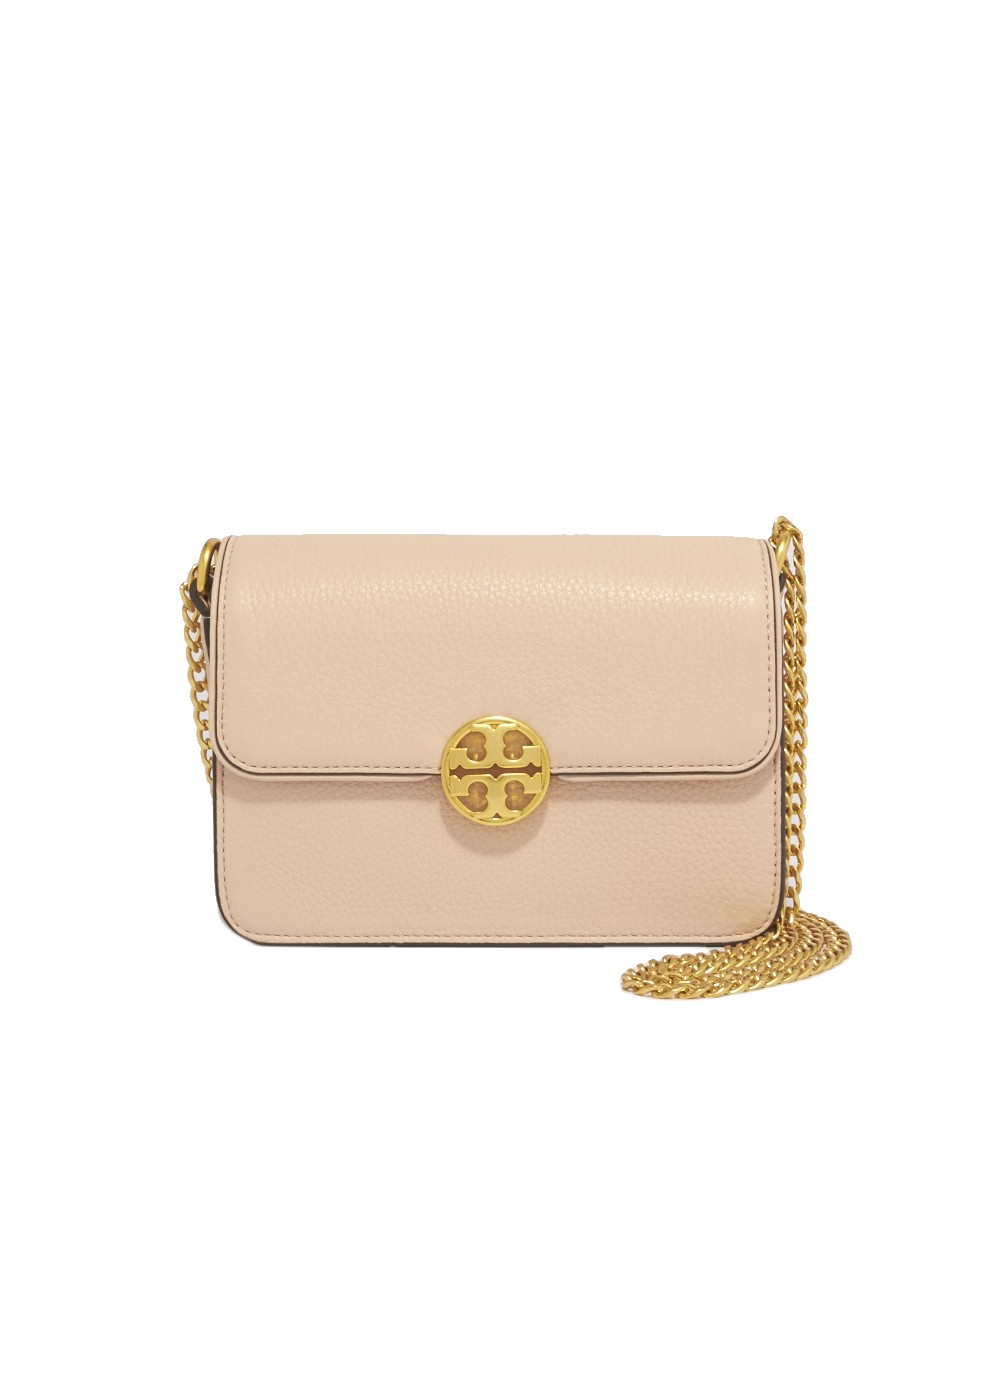 【最大48%OFF】CHELSEA MINI CROSSBODY BAG|PALE APRICOT|ショルダーバッグ|Tory Burch